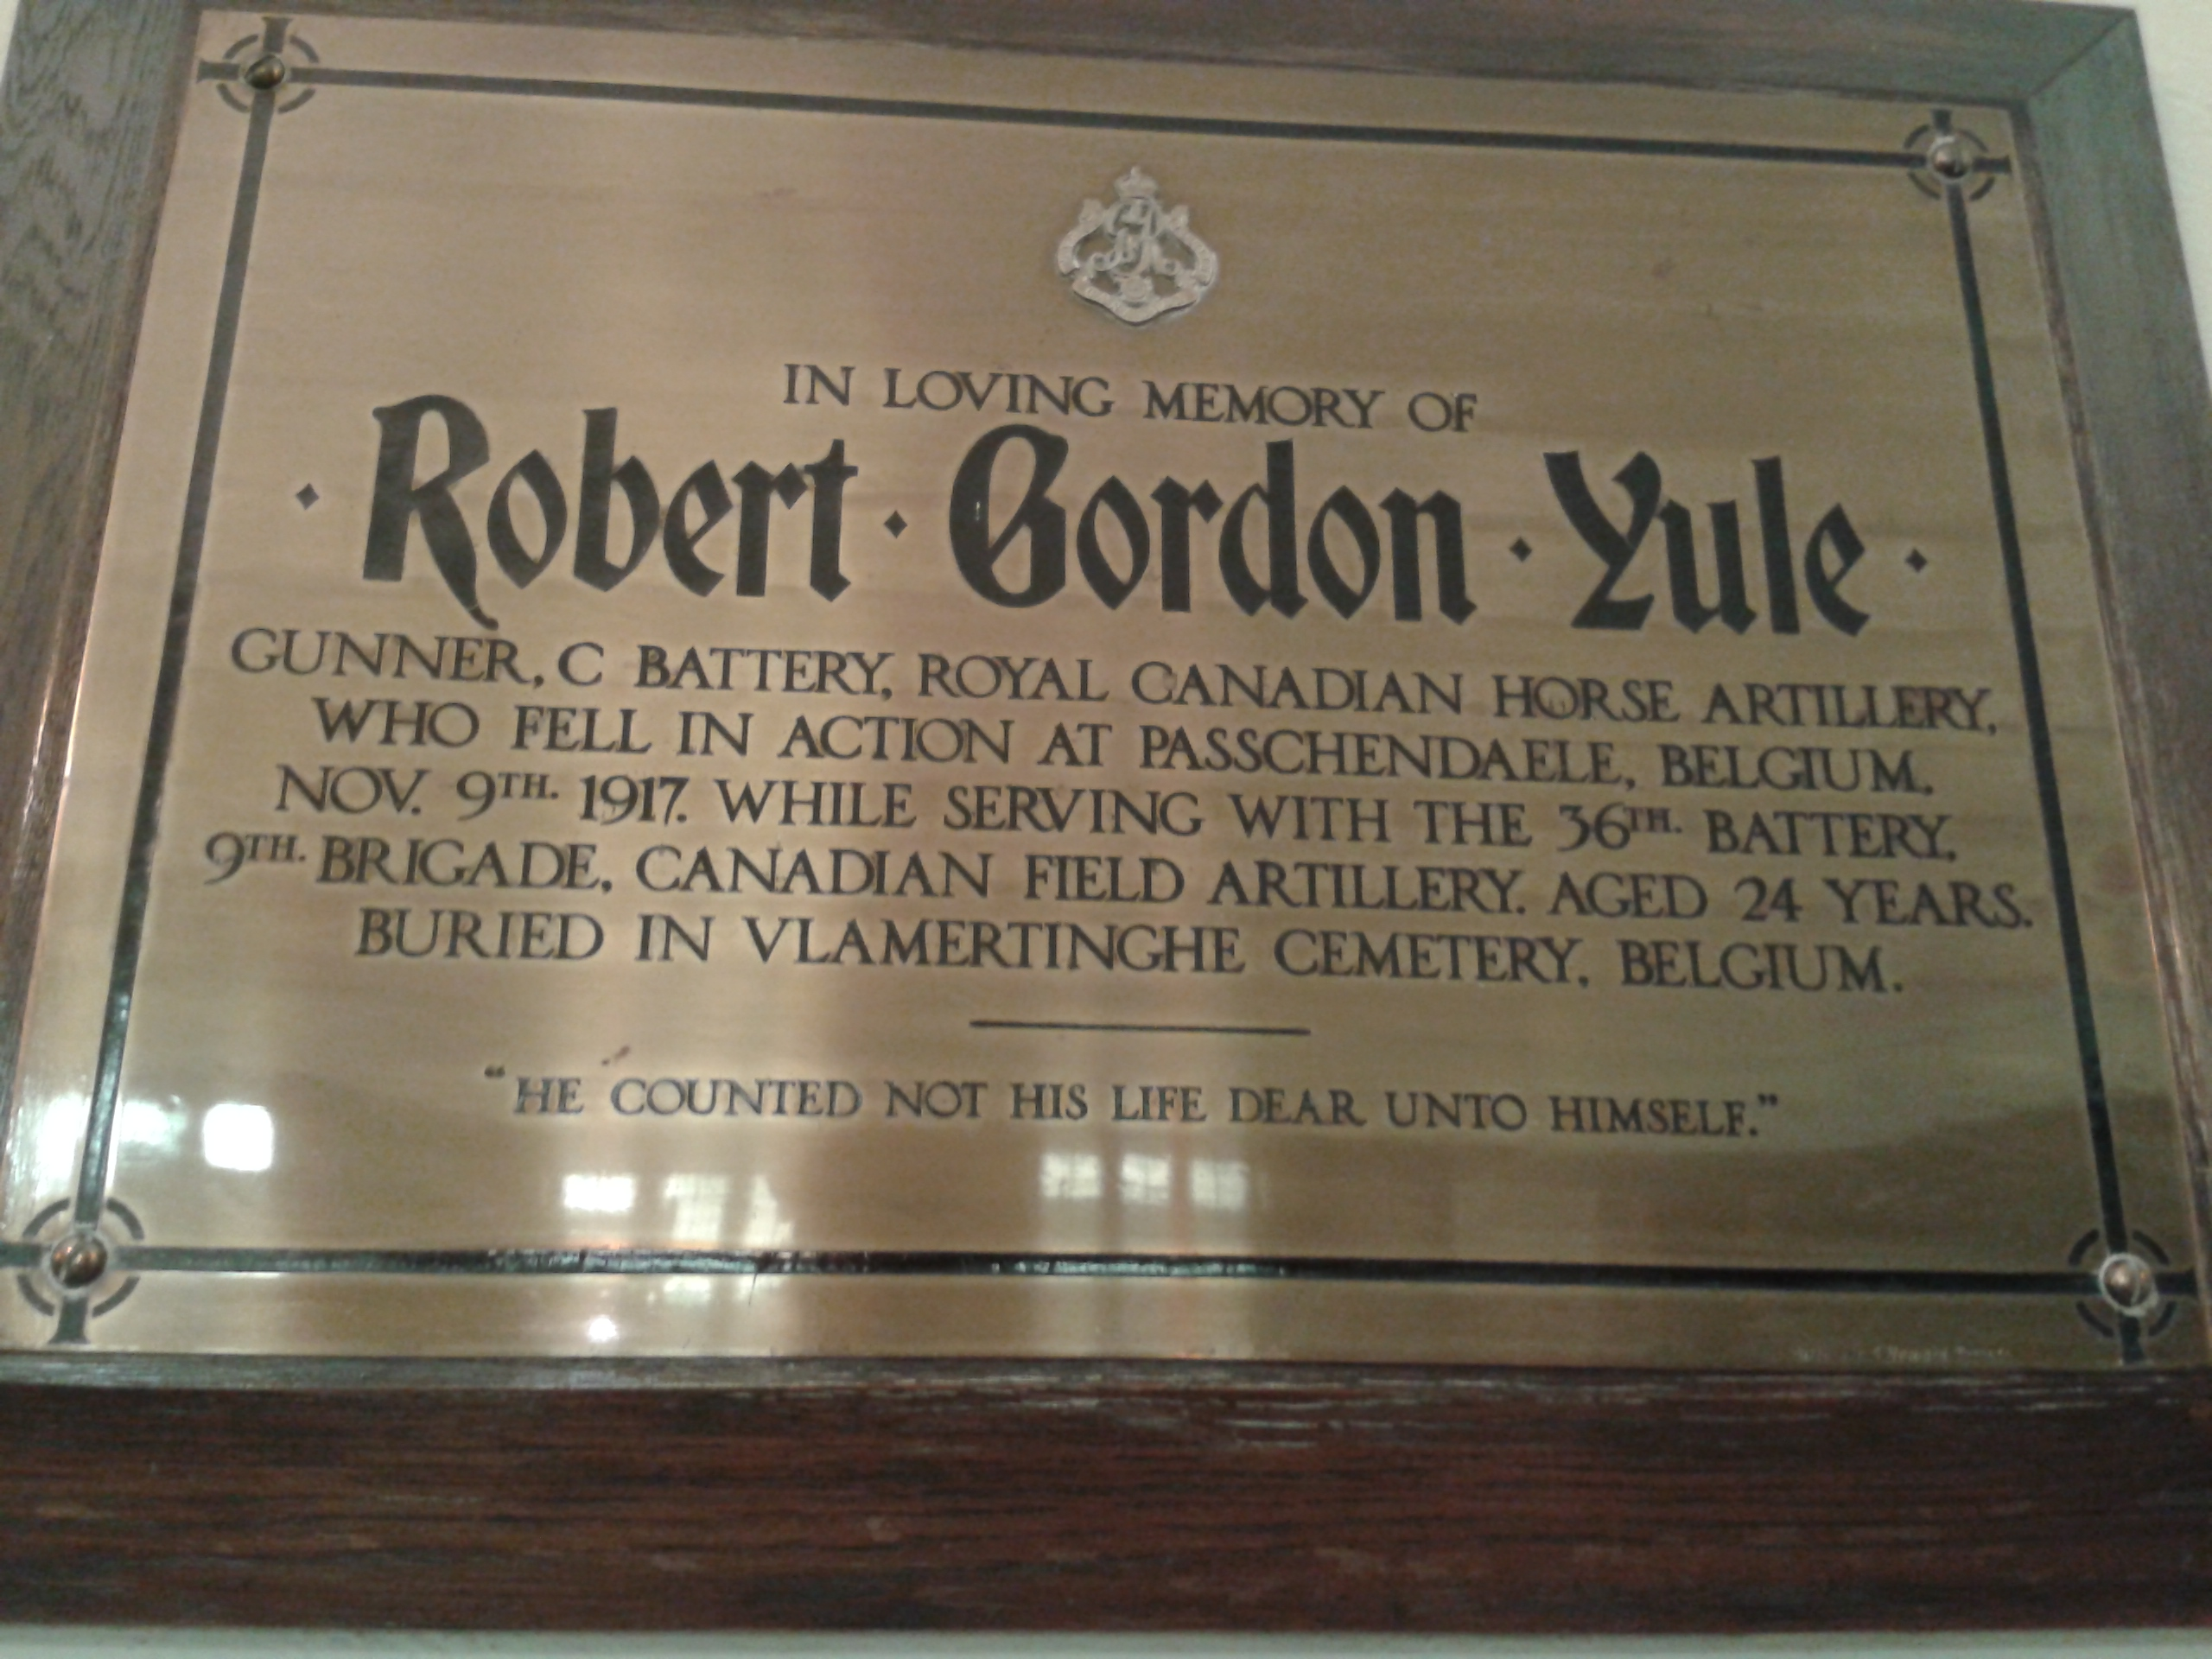 Memorial Plaque– Individual plaque found in the Sanctuary of St. John's Presbyterian Church, 415 Broadview Avenue, Toronto, Ontario, Canada.  Photo taken by Brian MacInnes (a member of the congregation).